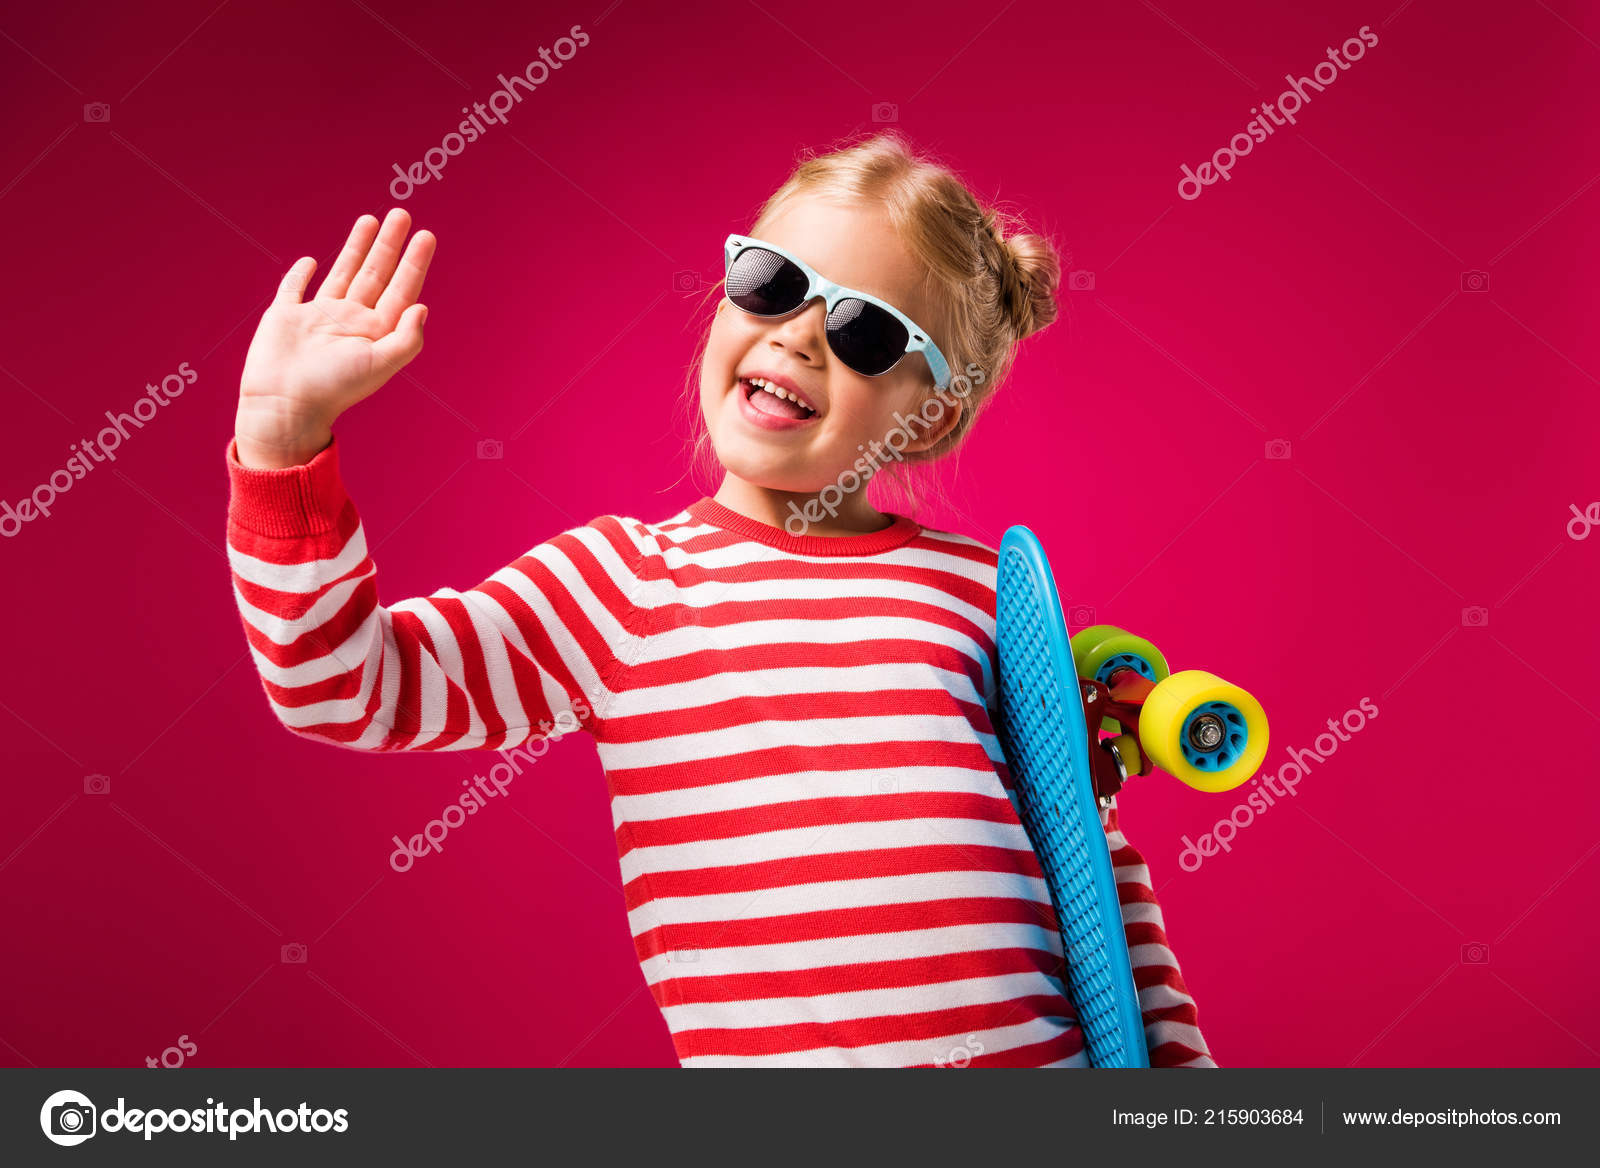 ff9dc642e4af Excited Stylish Kid Sunglasses Holding Penny Board Waving Isolated Red —  Stock Photo